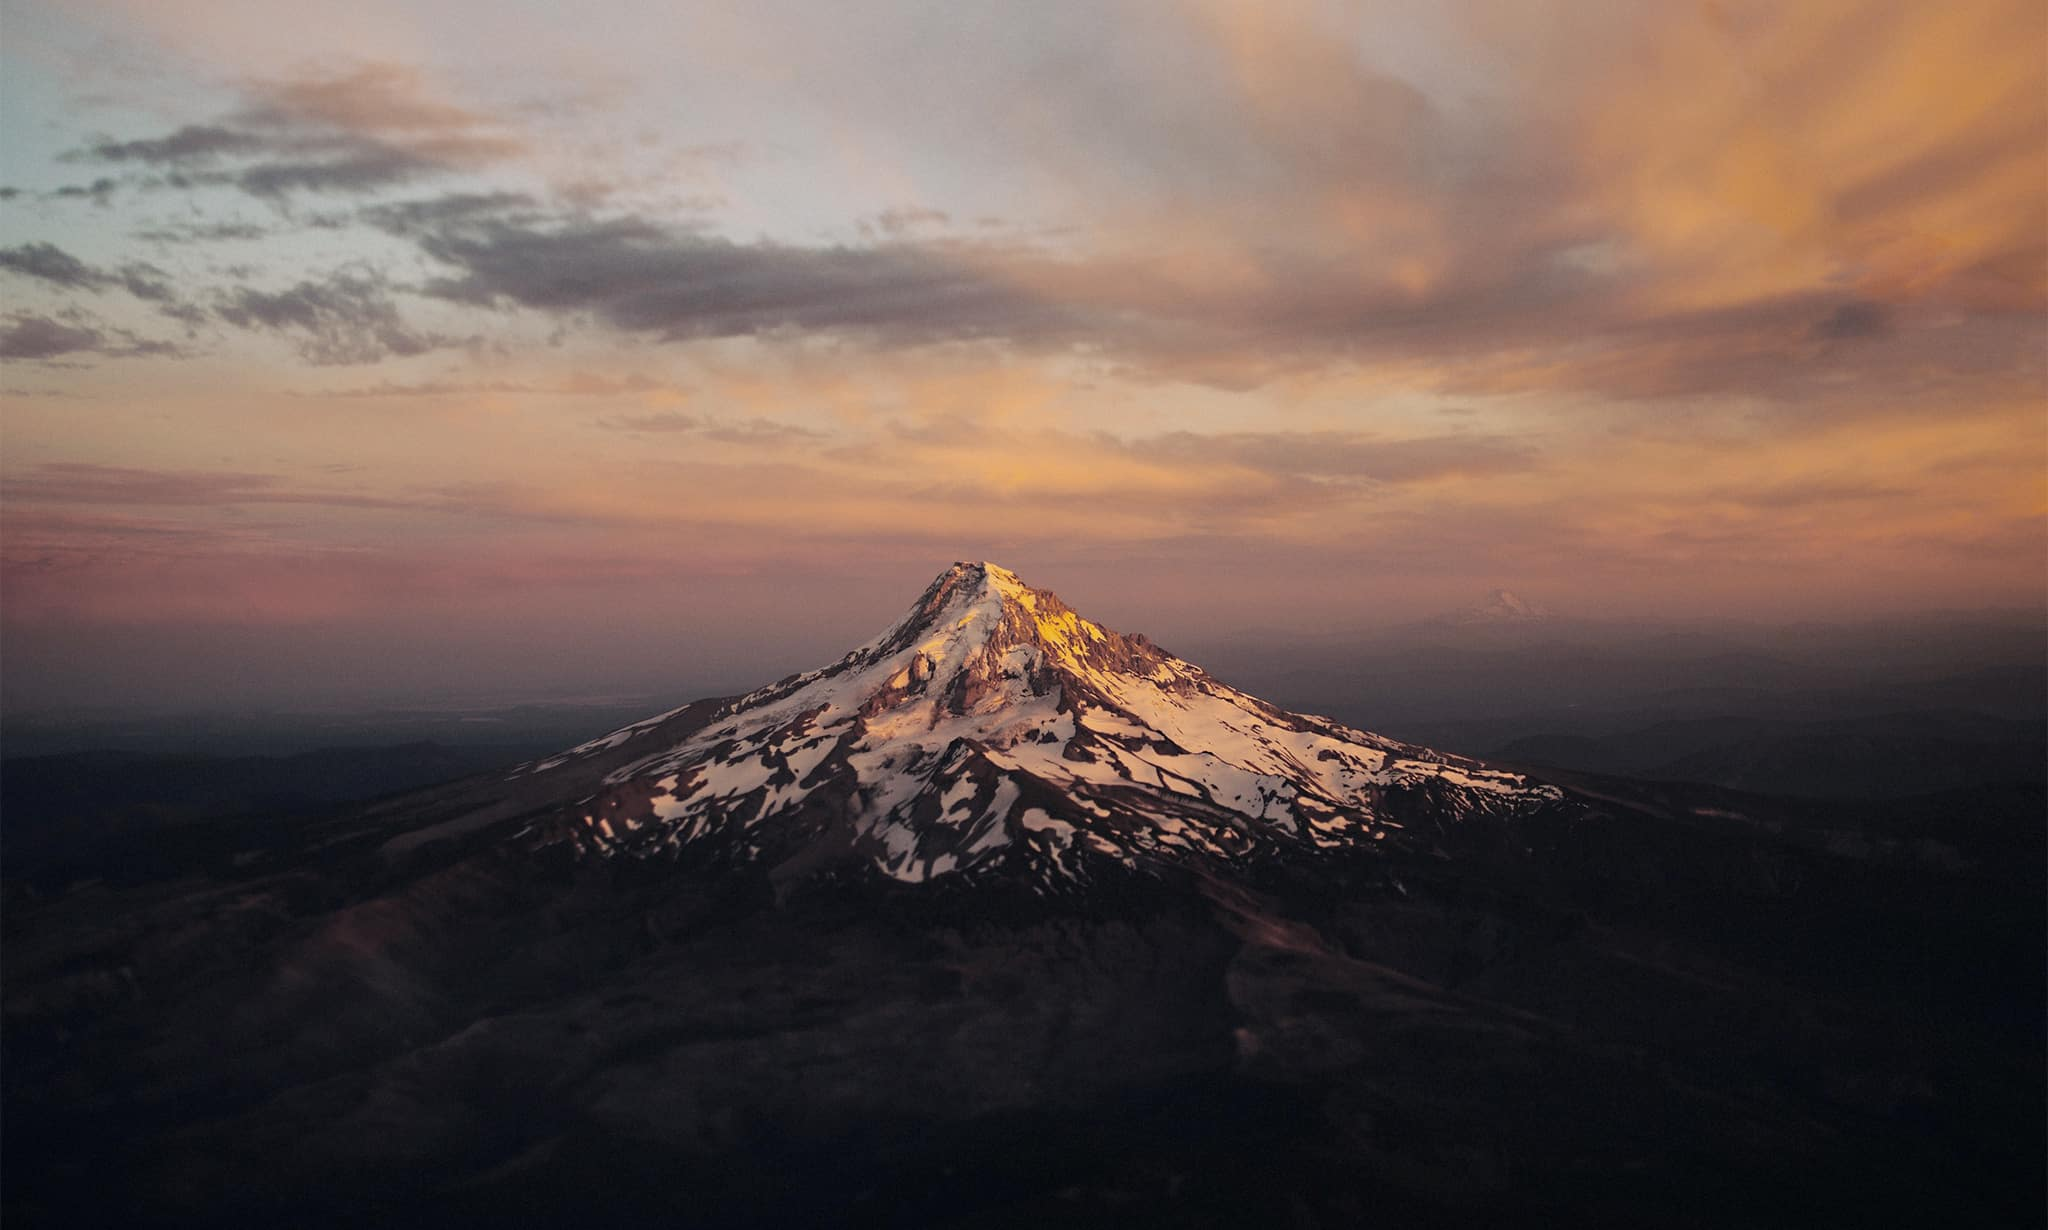 View of the iconic Mt Hood near portland oregon